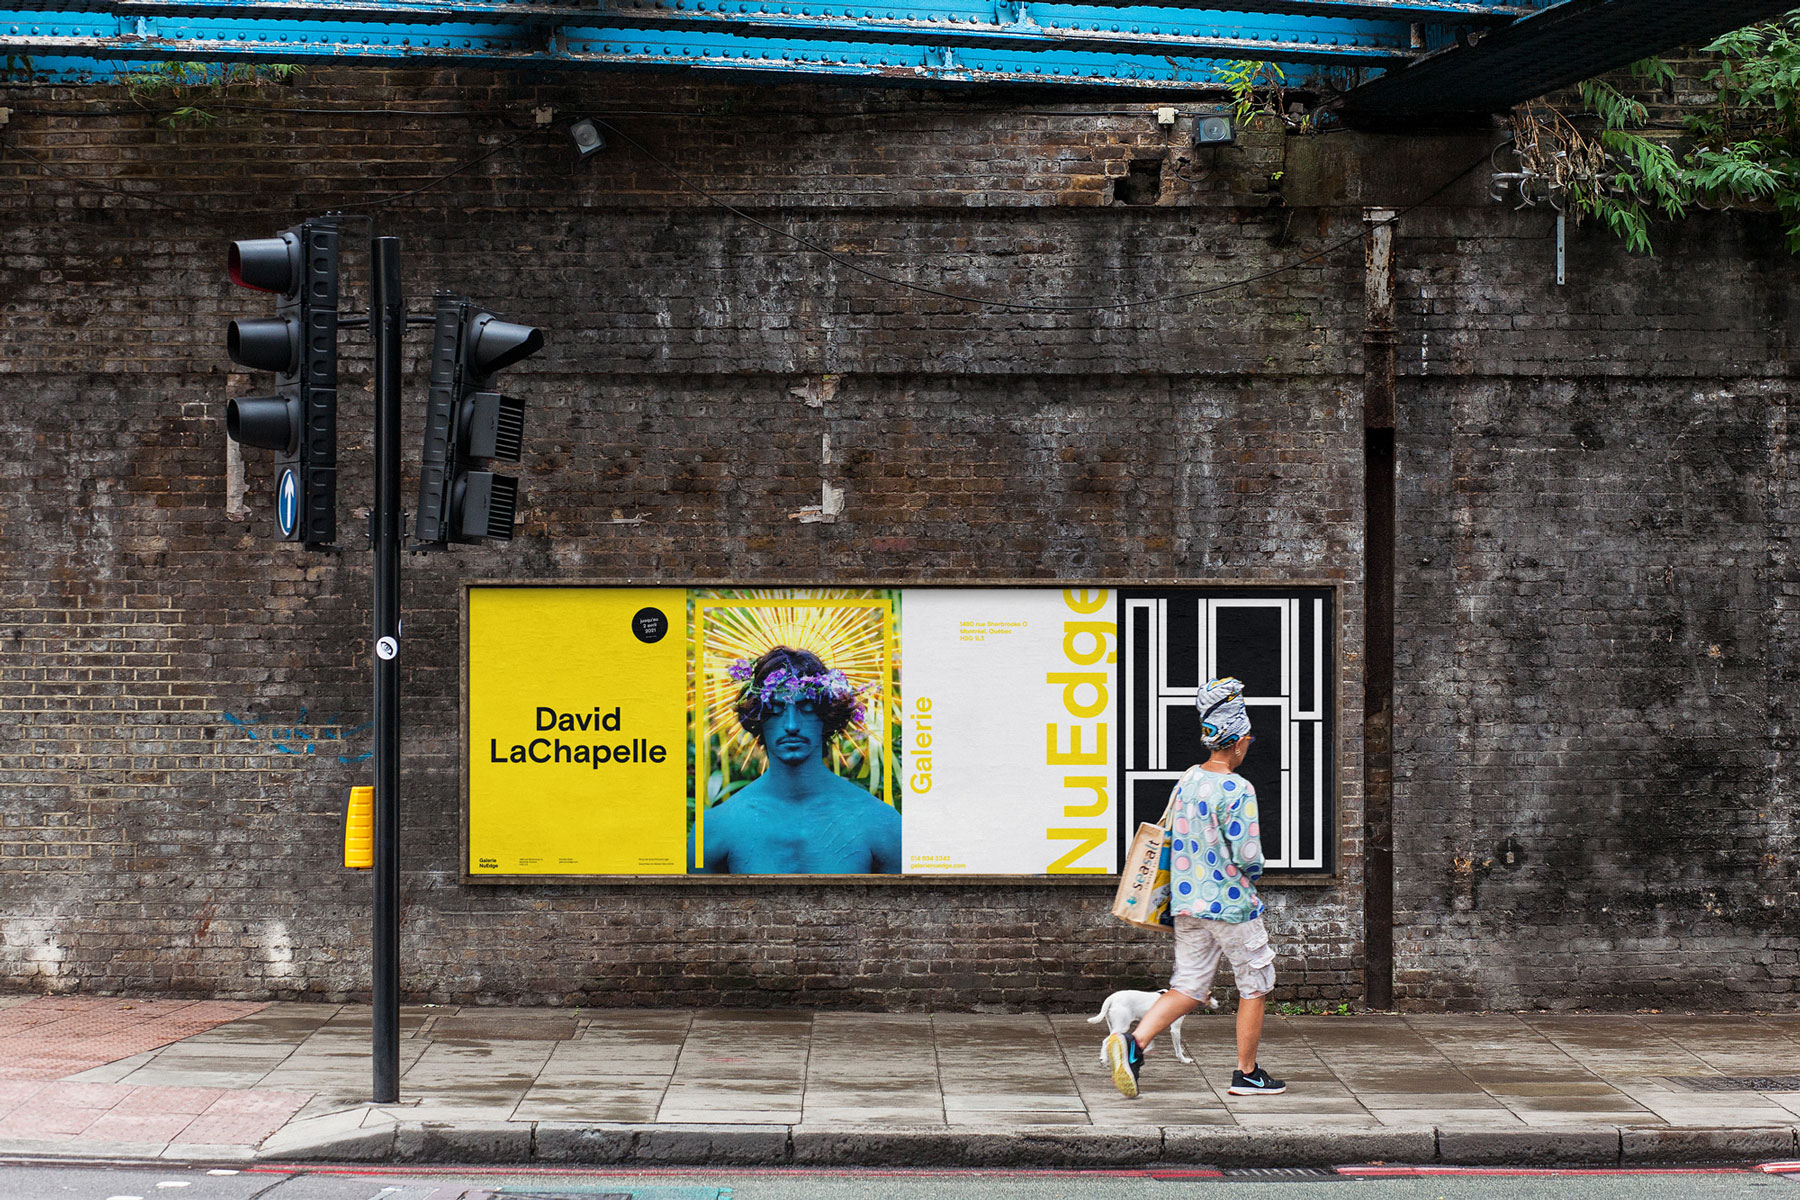 Second series of posters for Galerie NuEdge rebranding, as seen outdoors